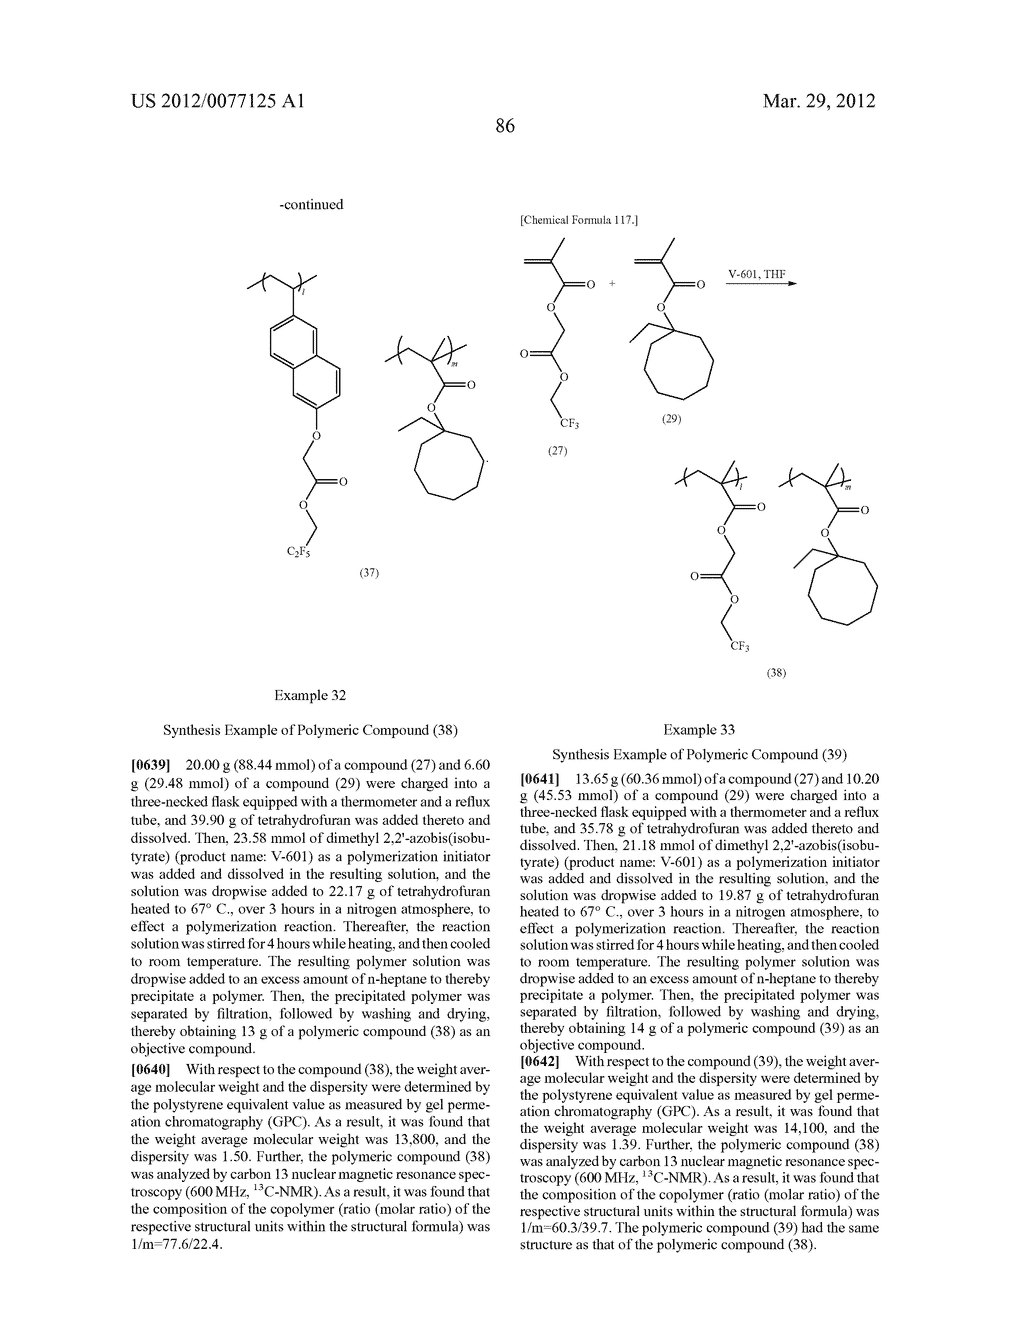 RESIST COMPOSITION FOR IMMERSION EXPOSURE, METHOD OF FORMING RESIST     PATTERN USING THE SAME, AND FLUORINE-CONTAINING COMPOUND - diagram, schematic, and image 88